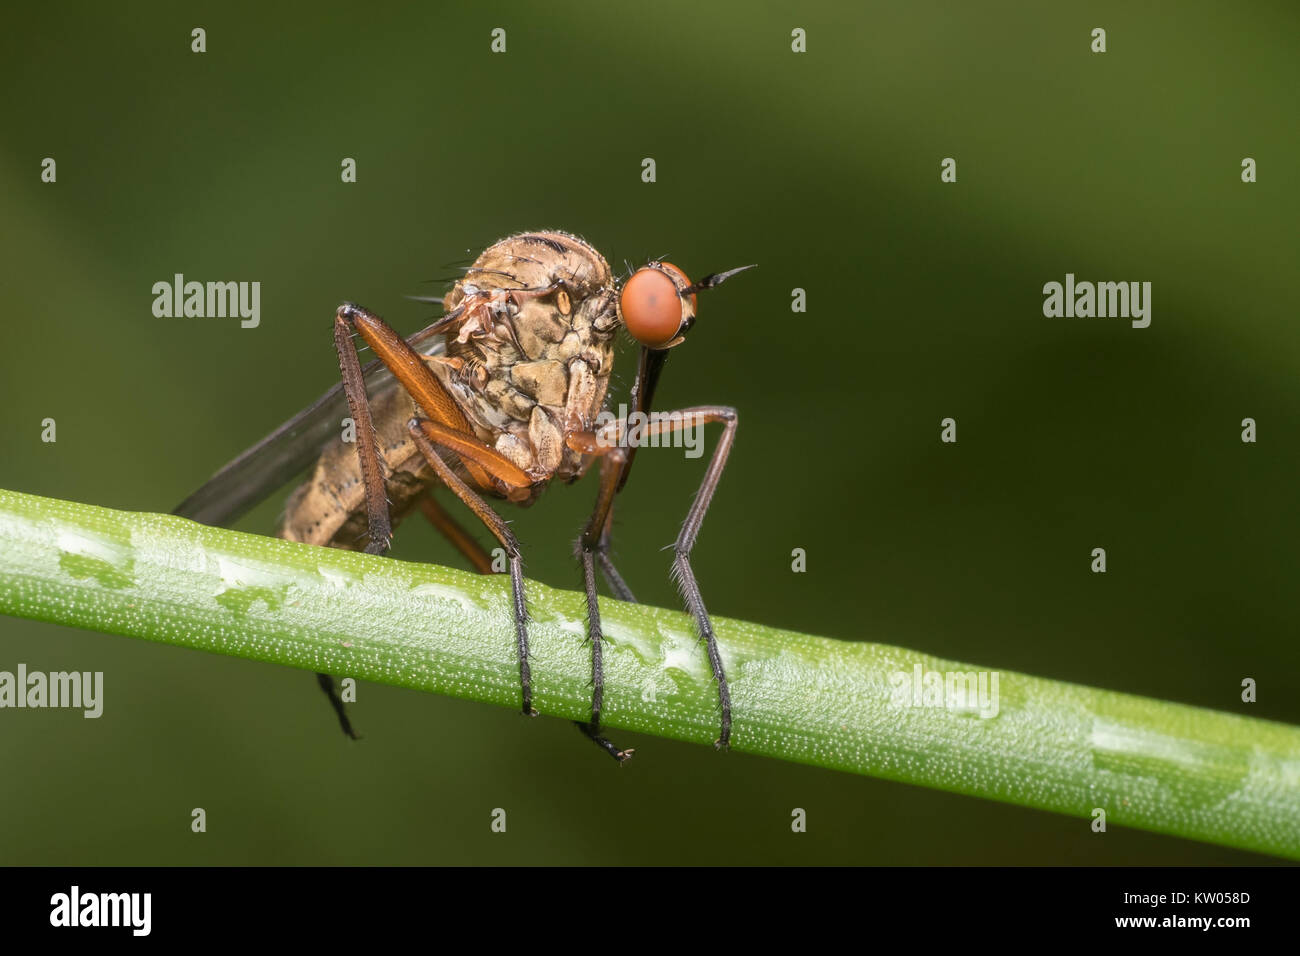 Daggerfly (Empis sp.) perched on reed stem. Knockavilla, Tipperary, Ireland - Stock Image